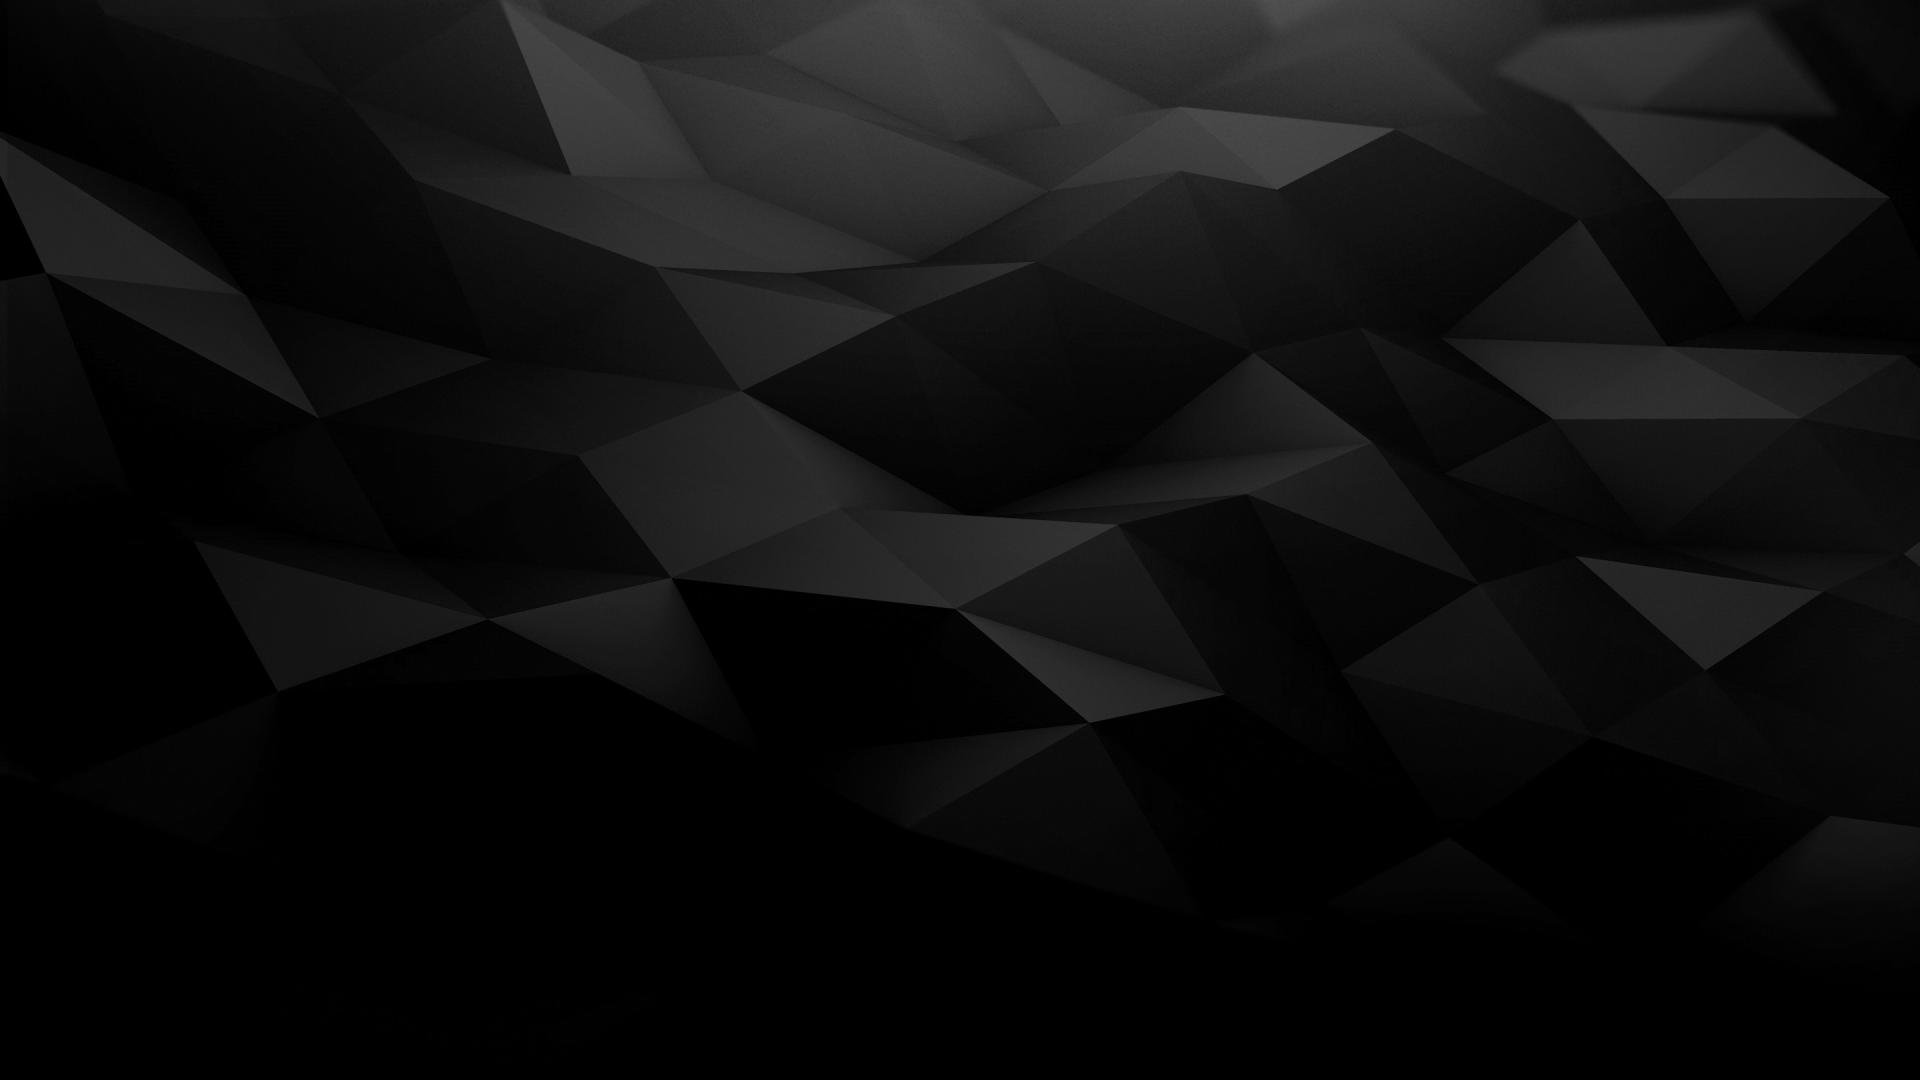 Black Abstract picture